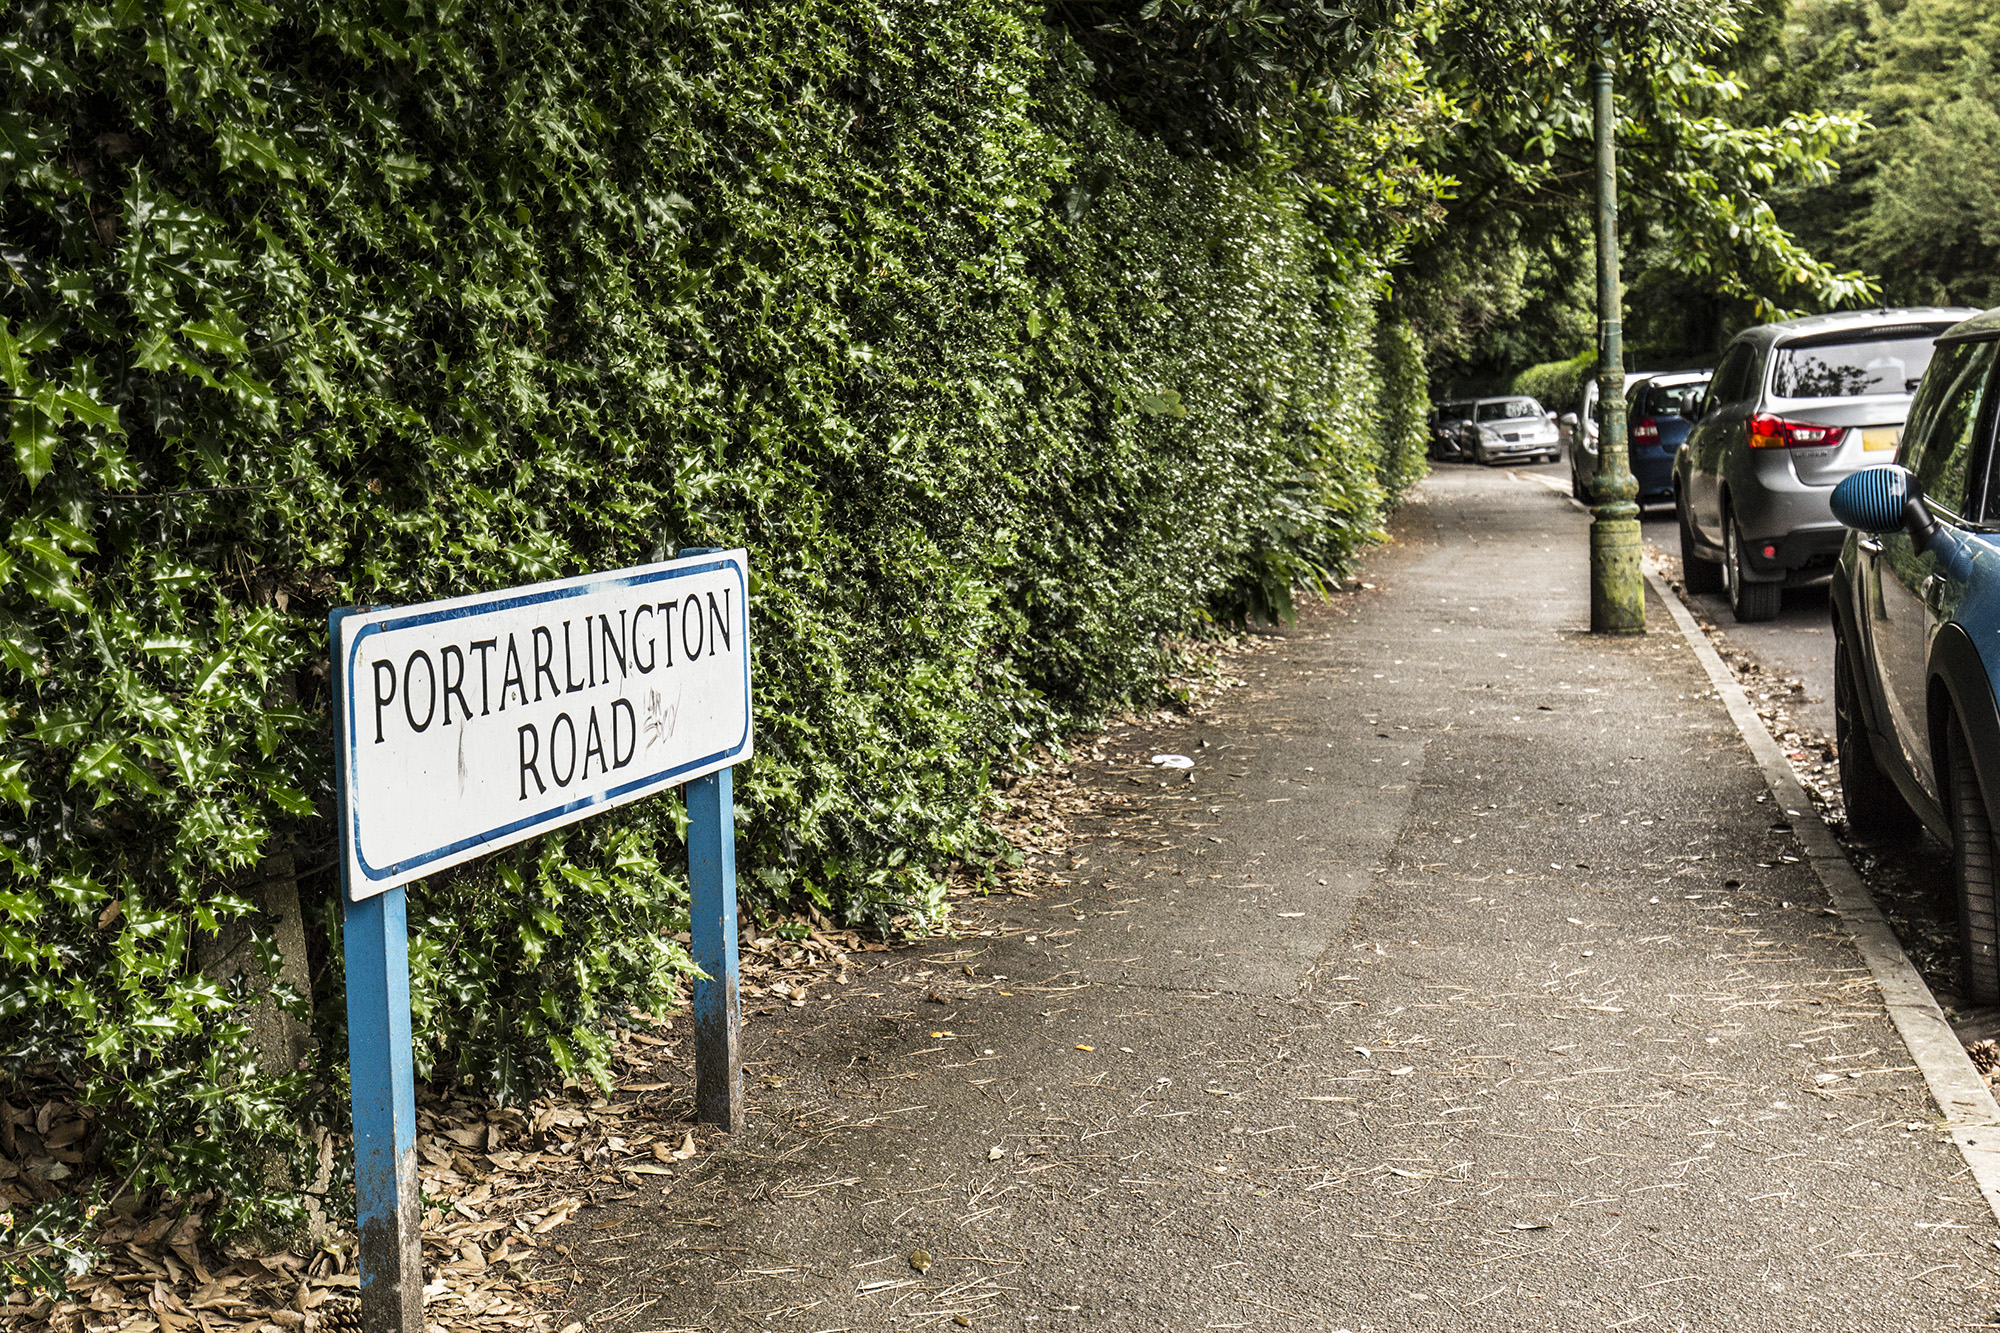 Portarlington Road, Westbourne.